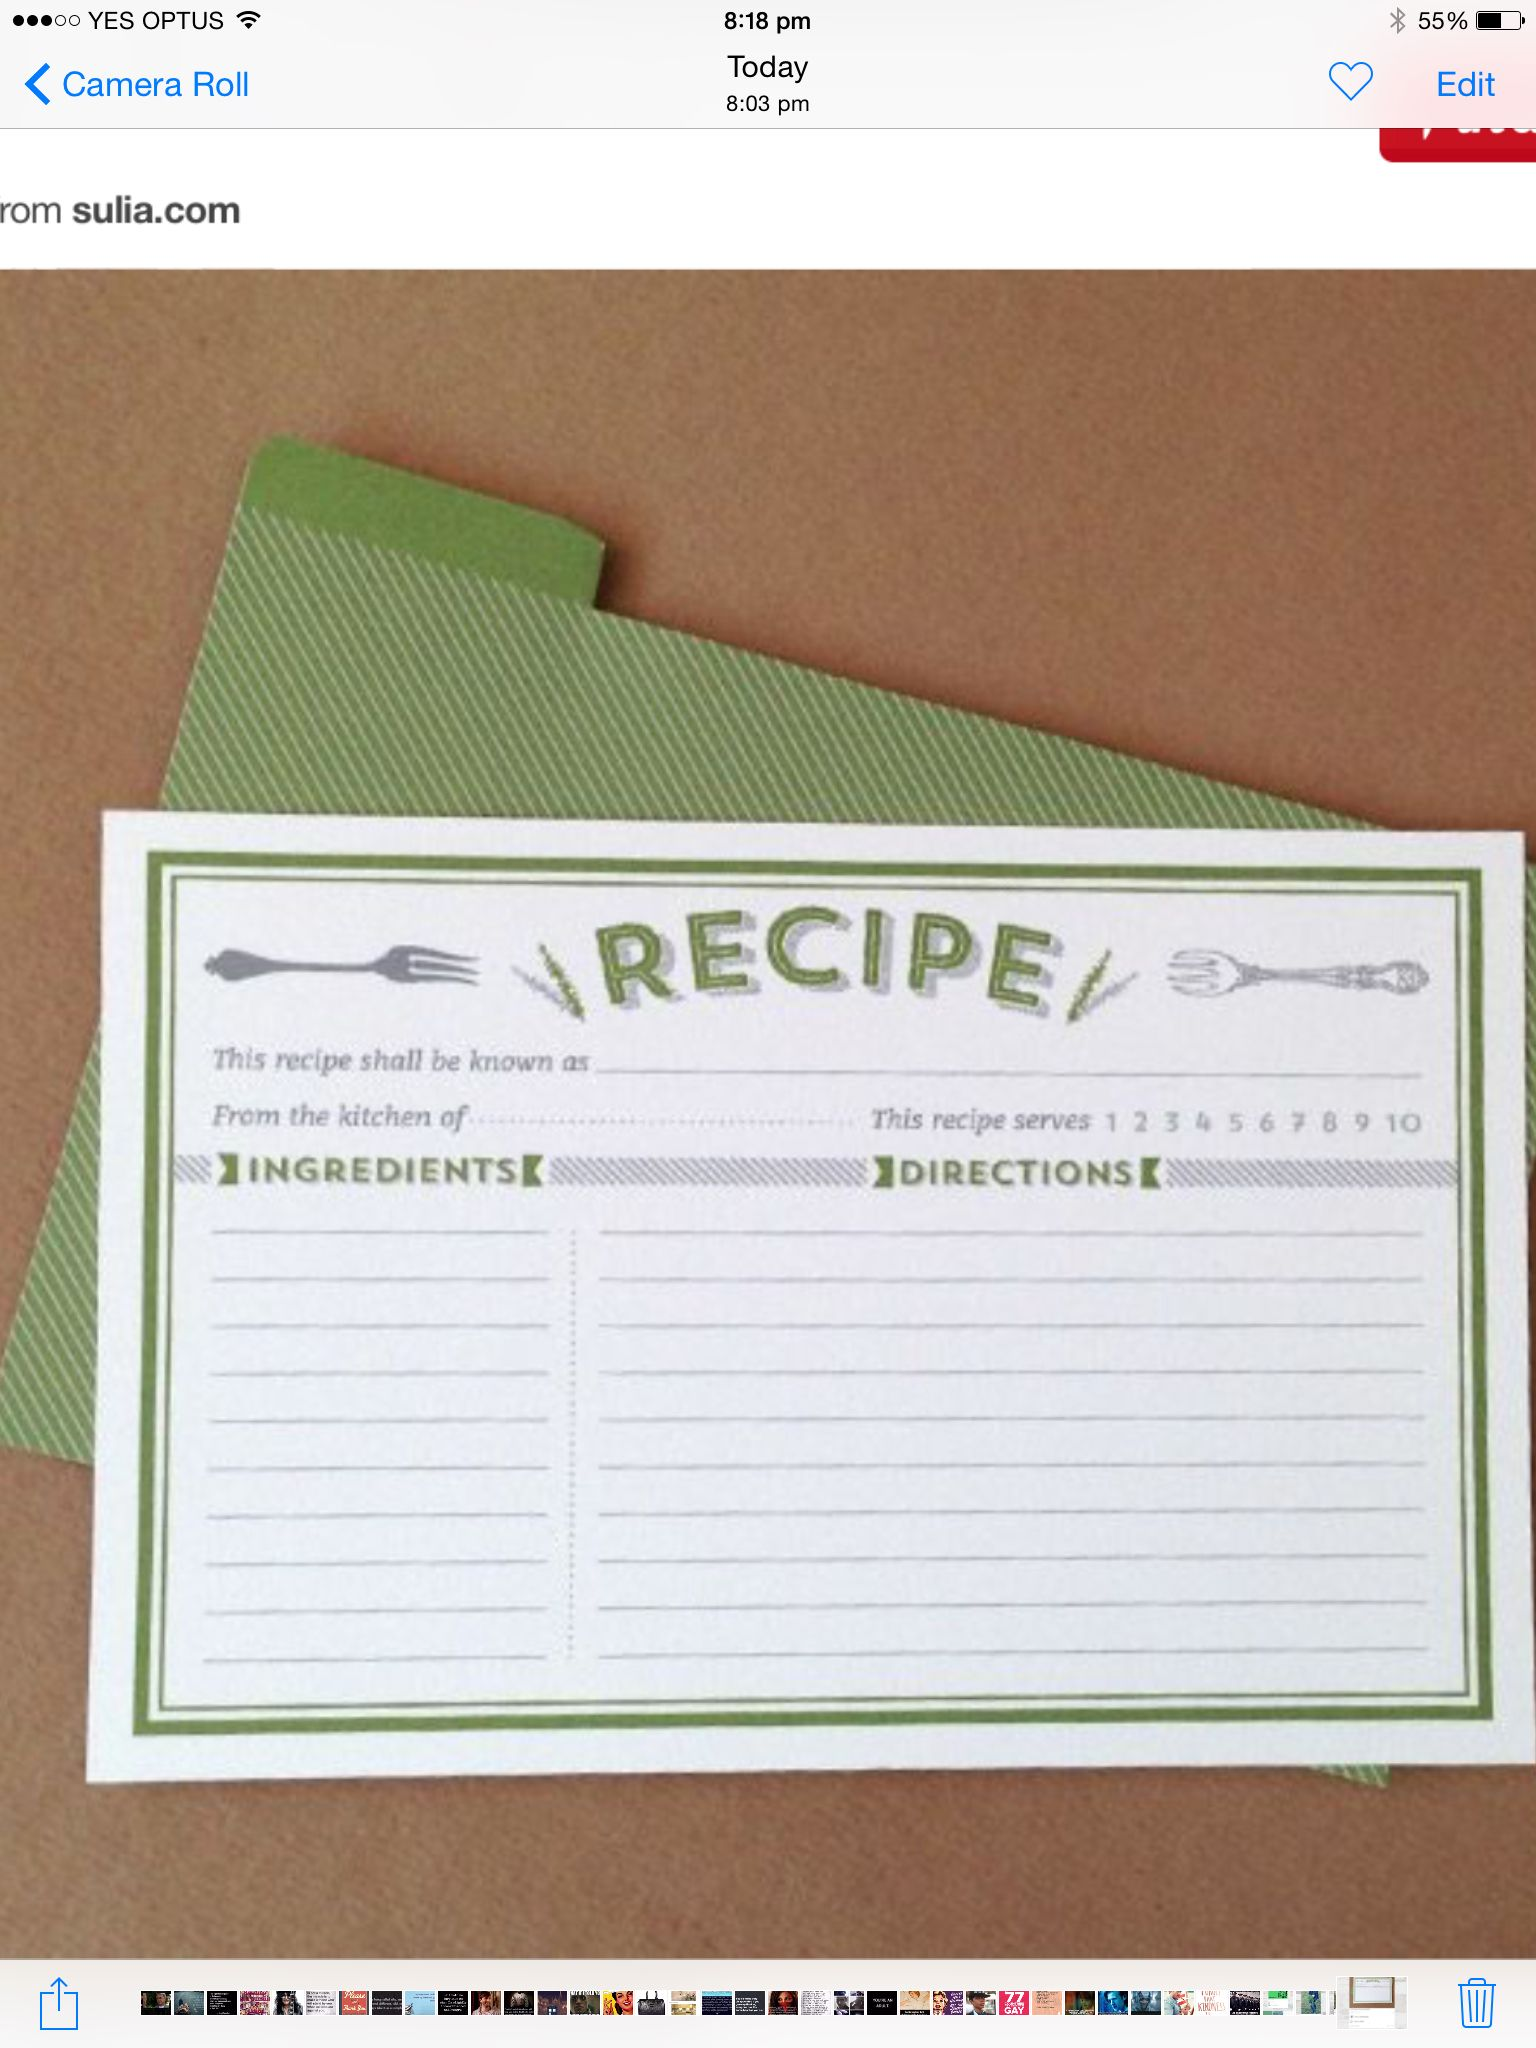 Free Recipe Card Templates For Word Unique Pinheather Beachell On Yummy Food  Pinterest  Yummy Food Food .